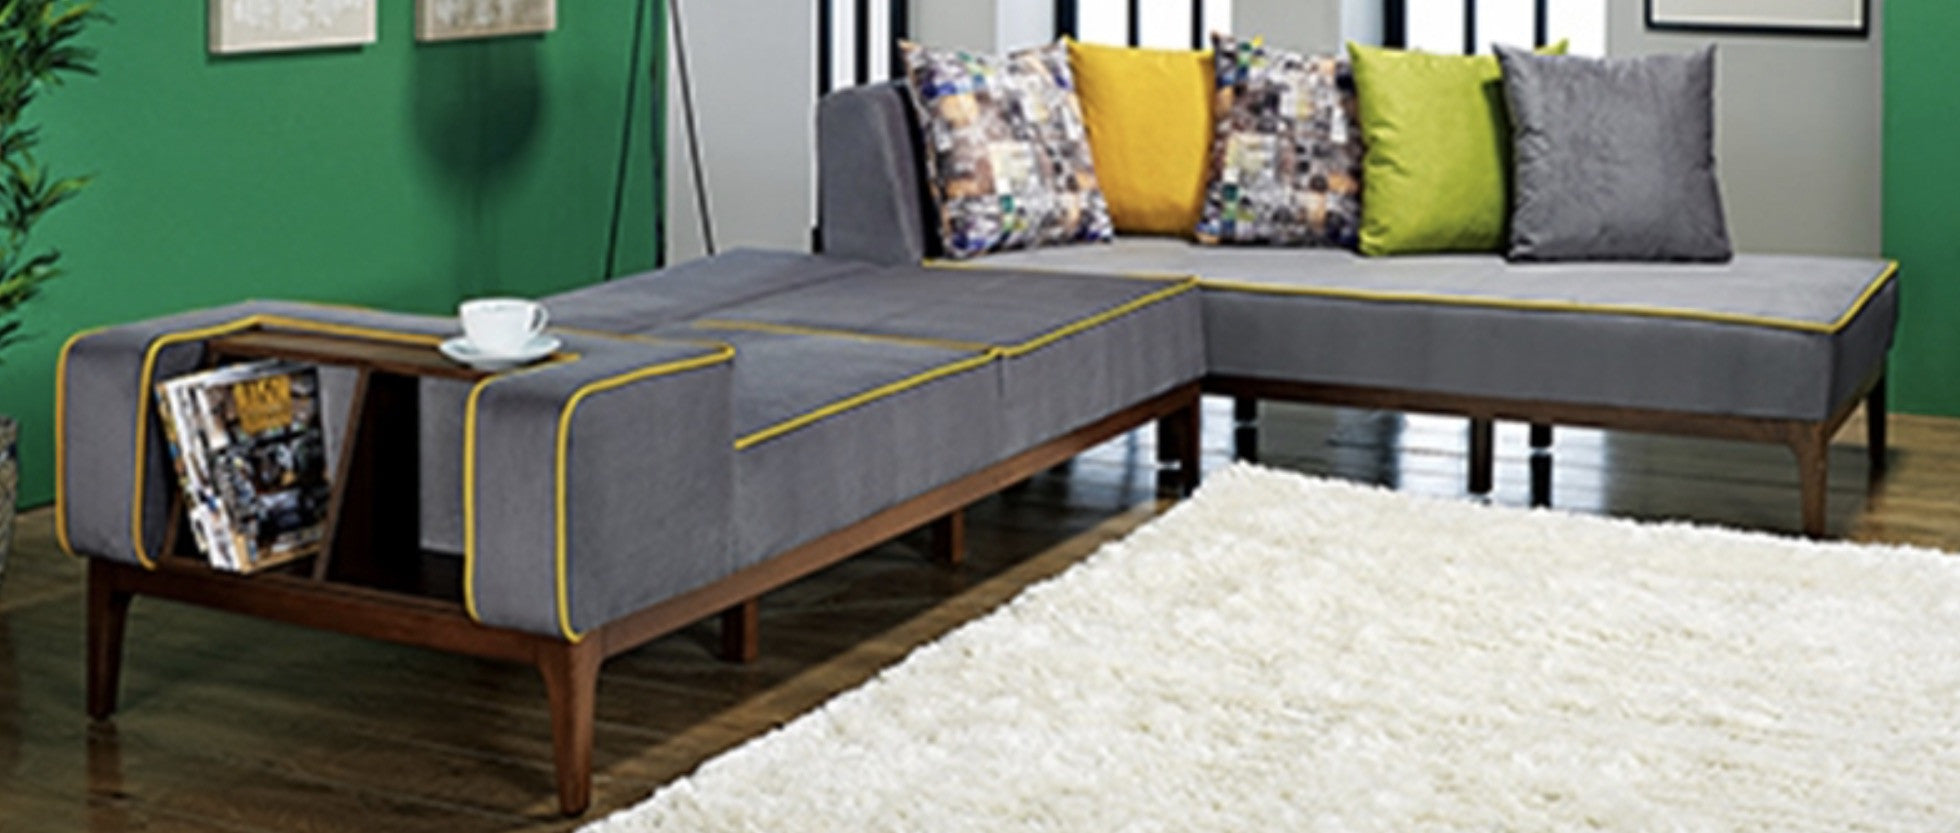 Marbel Sectional Sofa Couch Sleeper - Retro Look - Gray